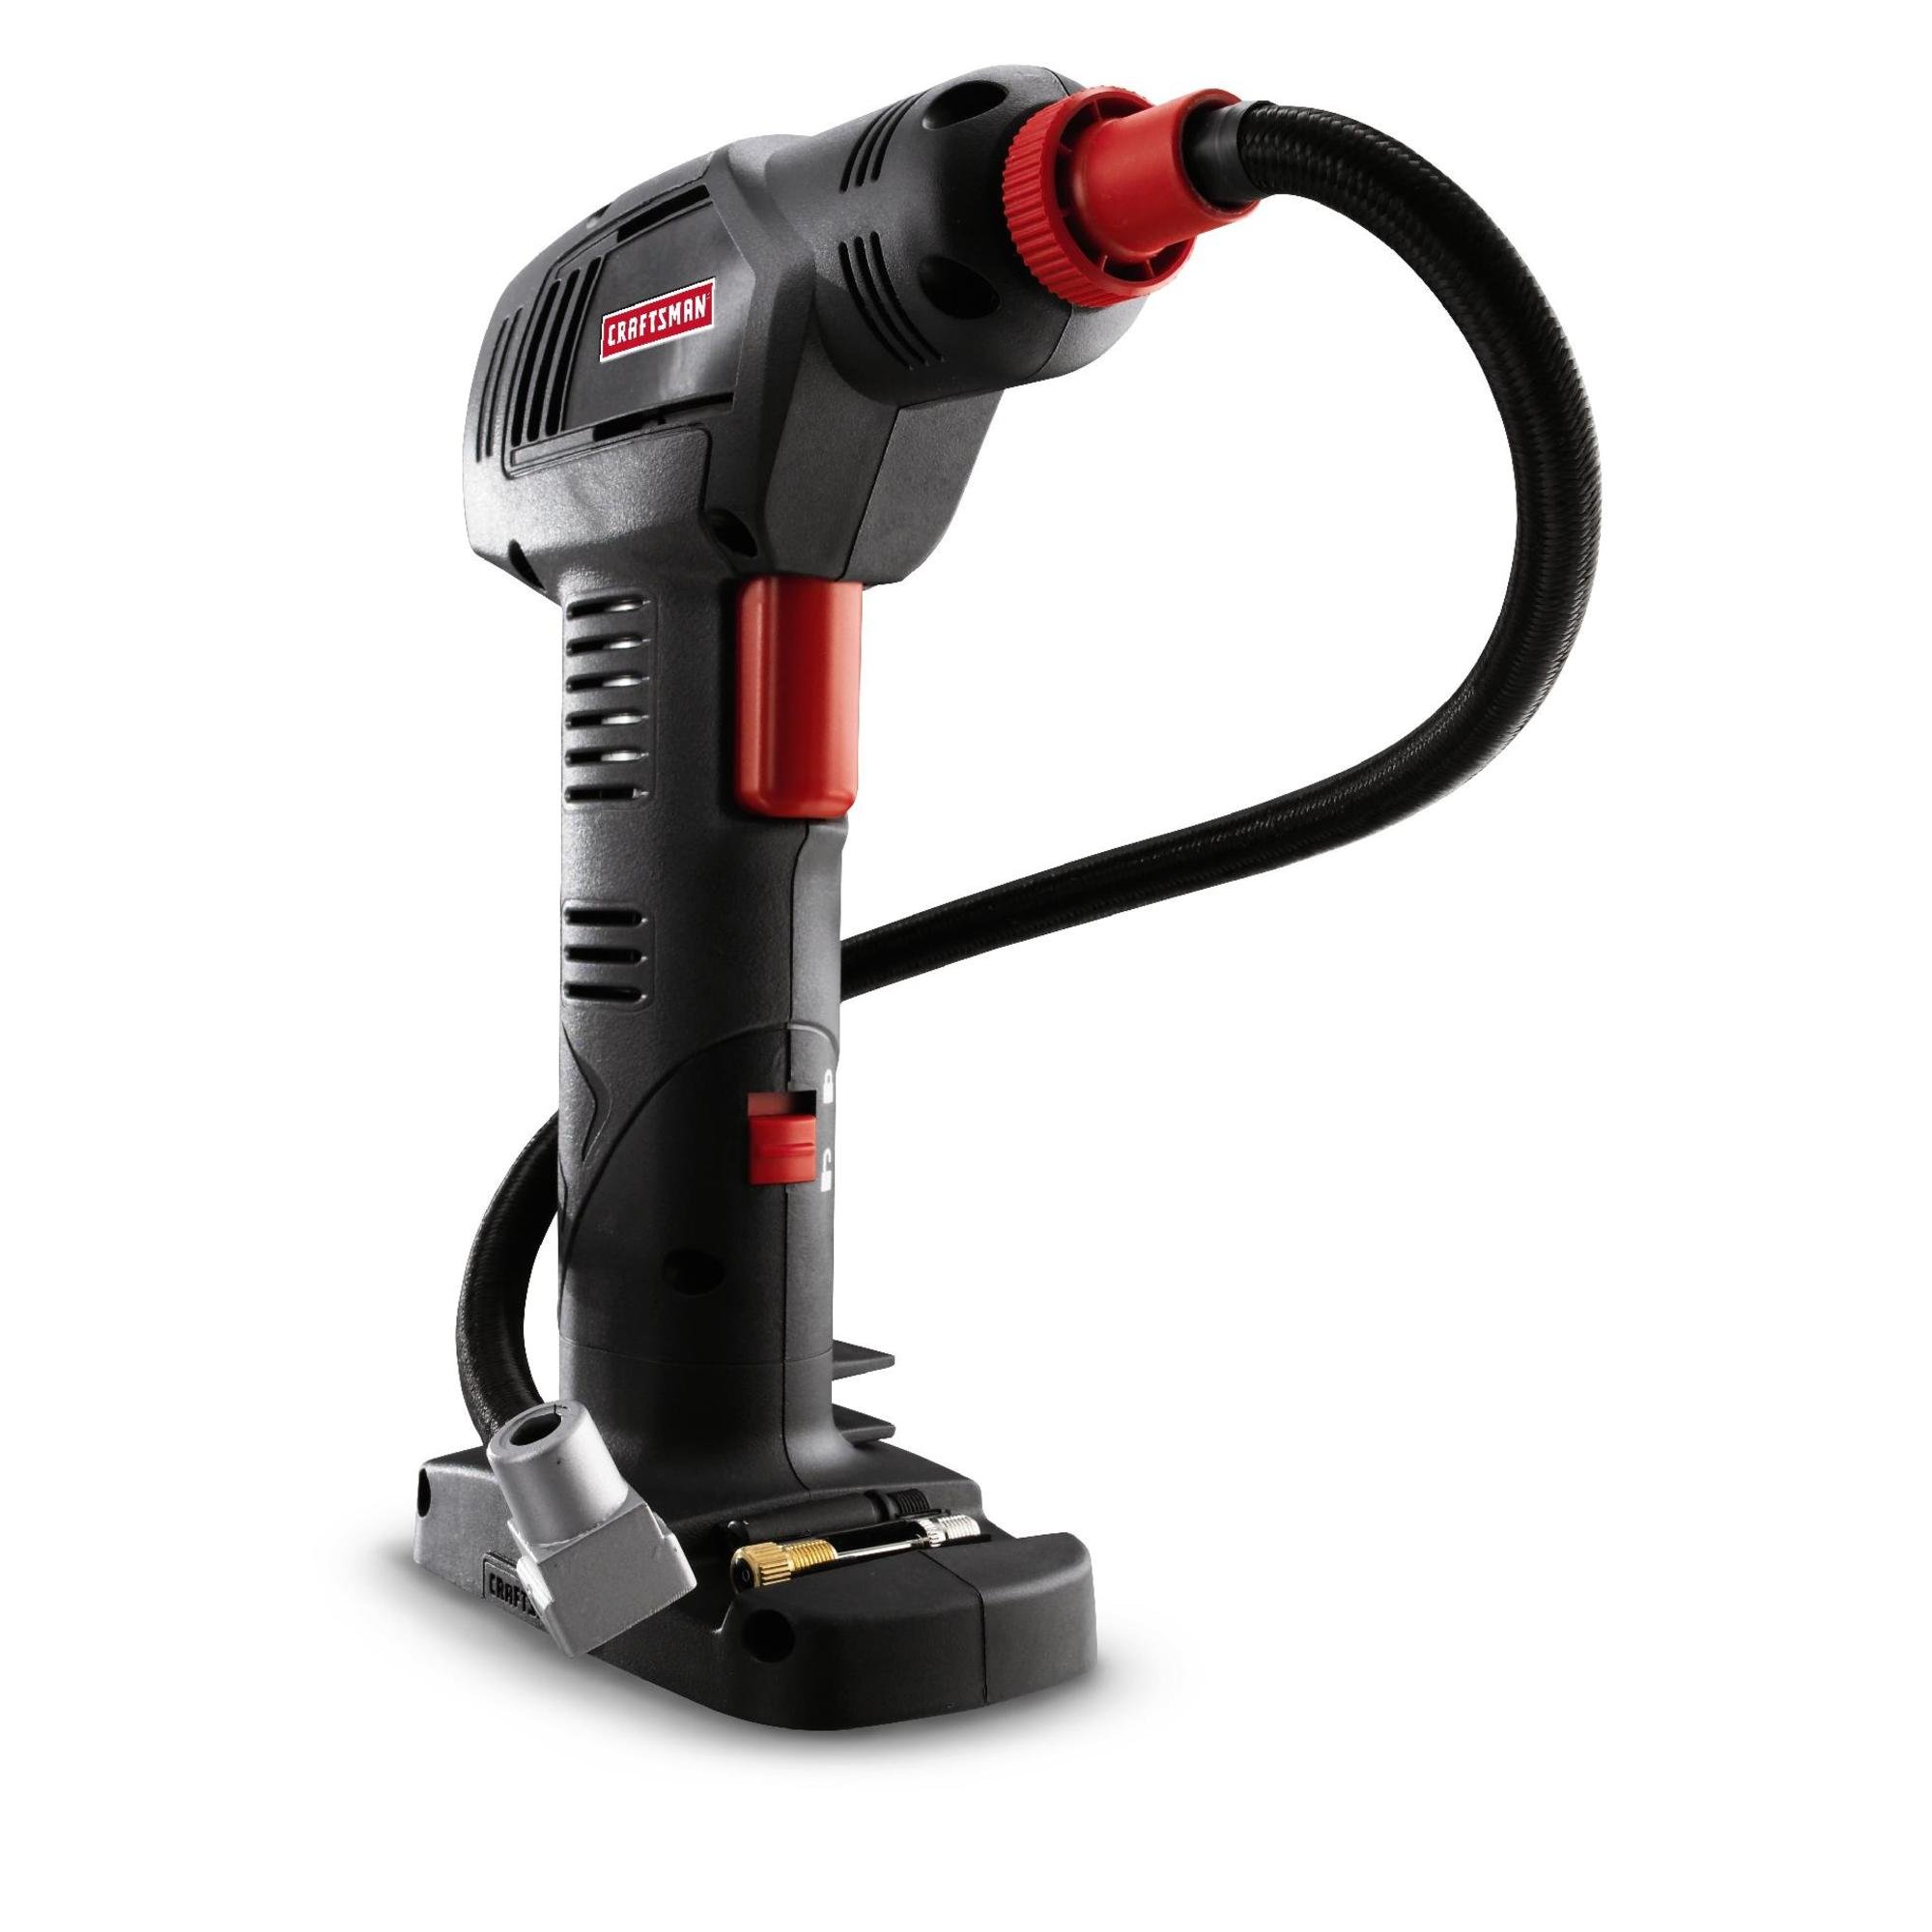 Cheap Craftsman Cordless Tool, find Craftsman Cordless Tool deals on ...